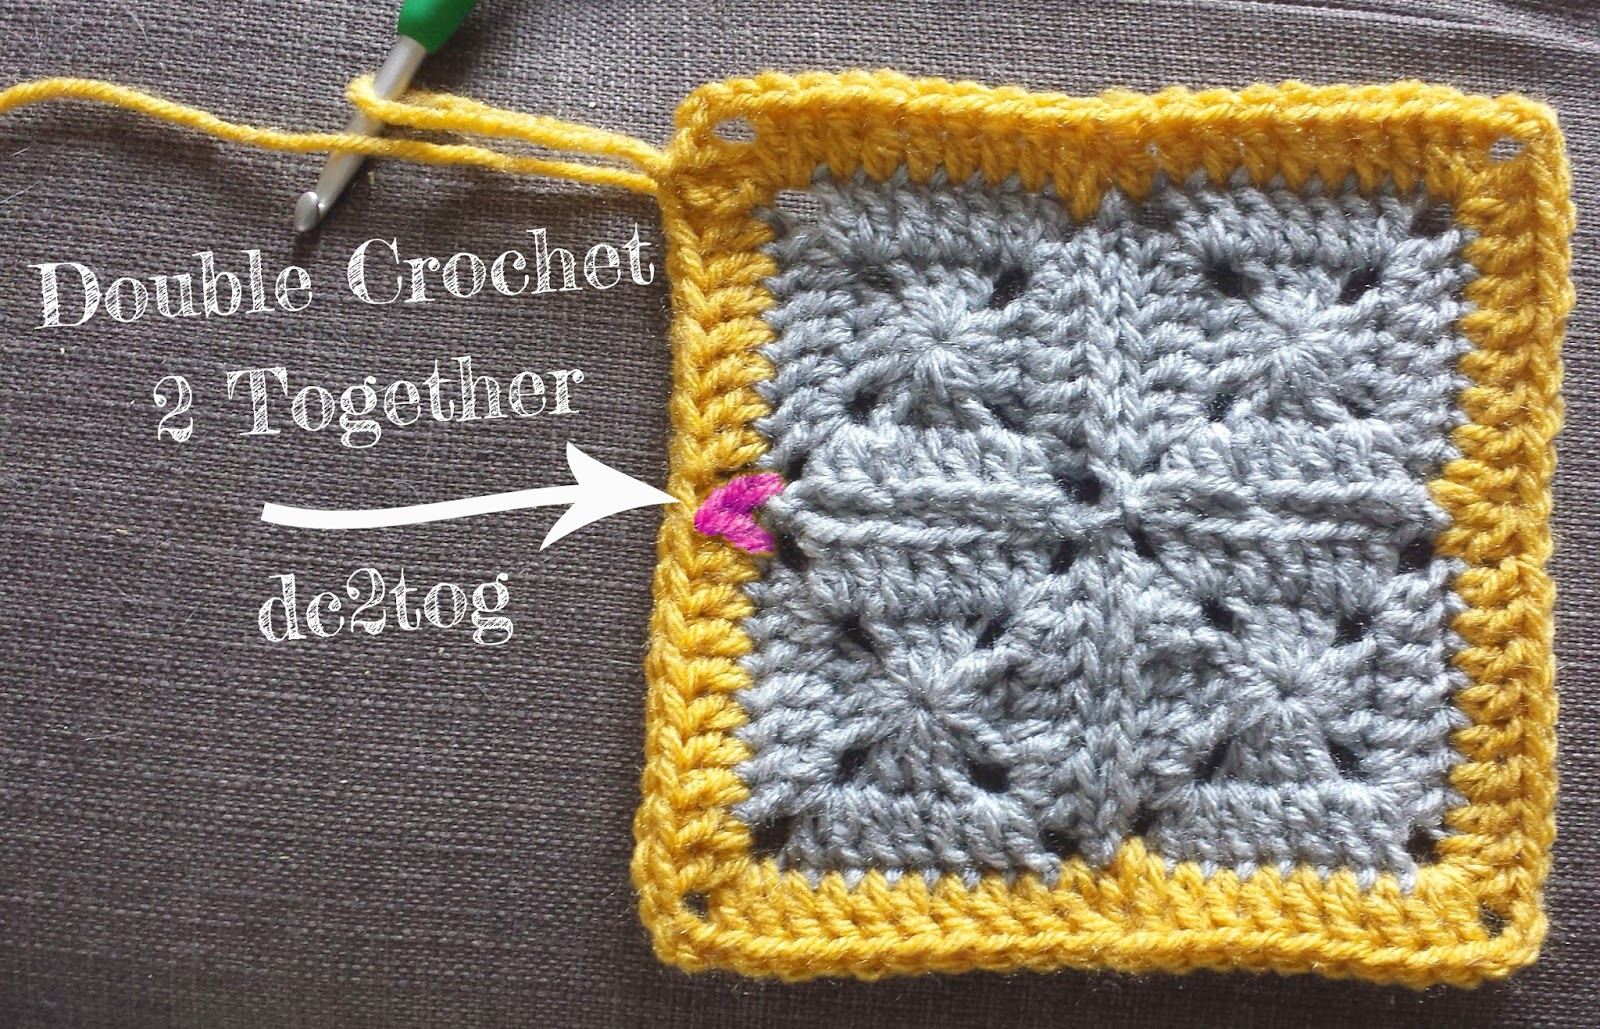 Crochet Stitches Dc2tog : How to crochet a flat border around solid granny squares (sort of ...